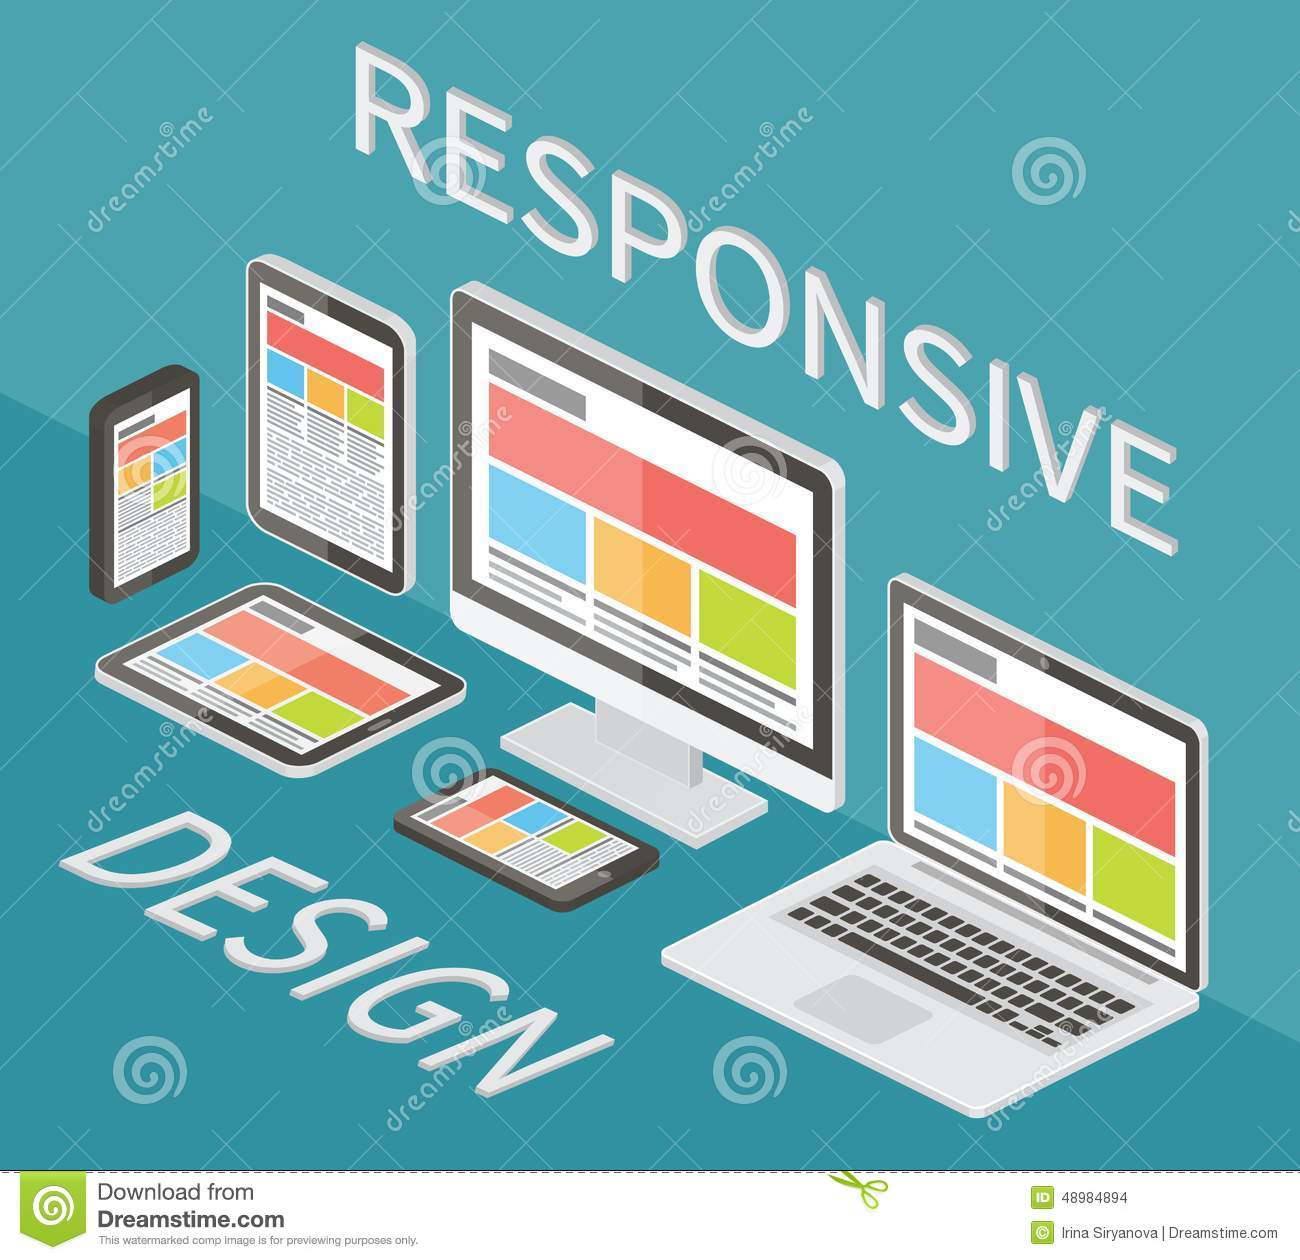 Responsive web design 3d isometric flat vector stock for 3d flat design online